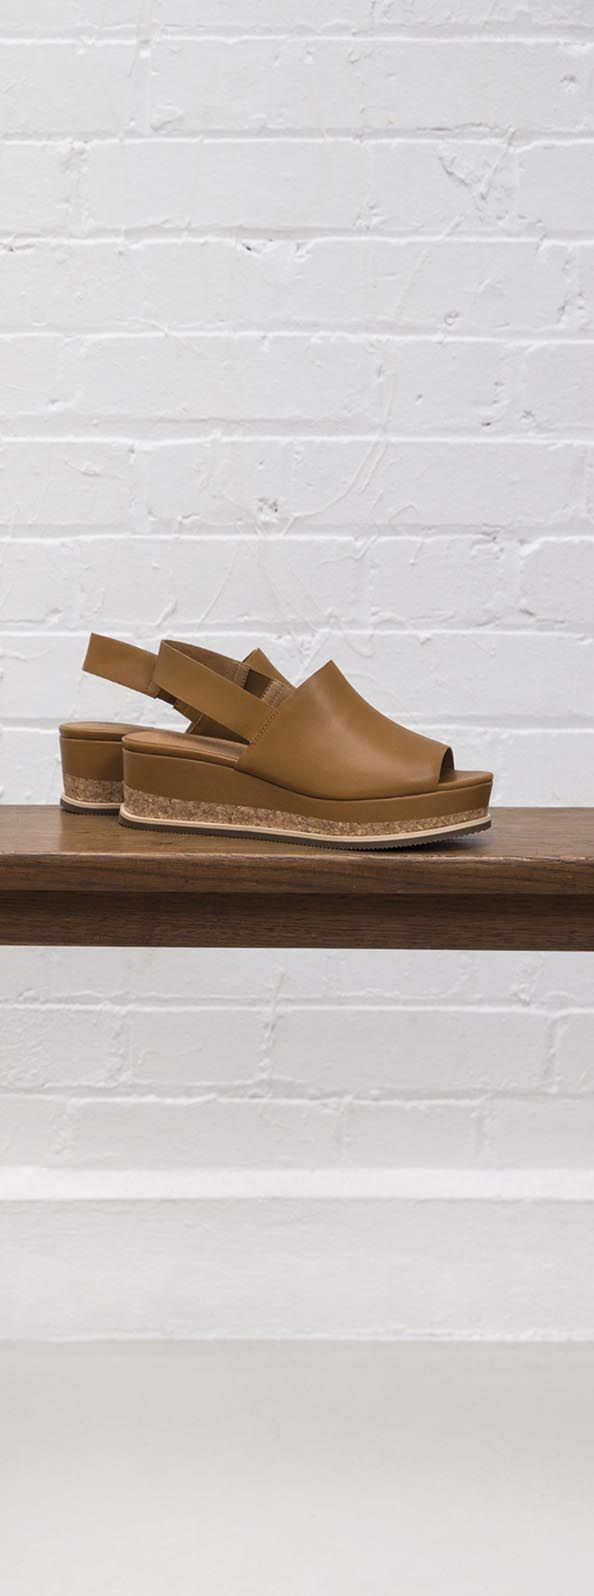 Take your summer footwear to new heights with the Cork Detail High Wedge Sandals.